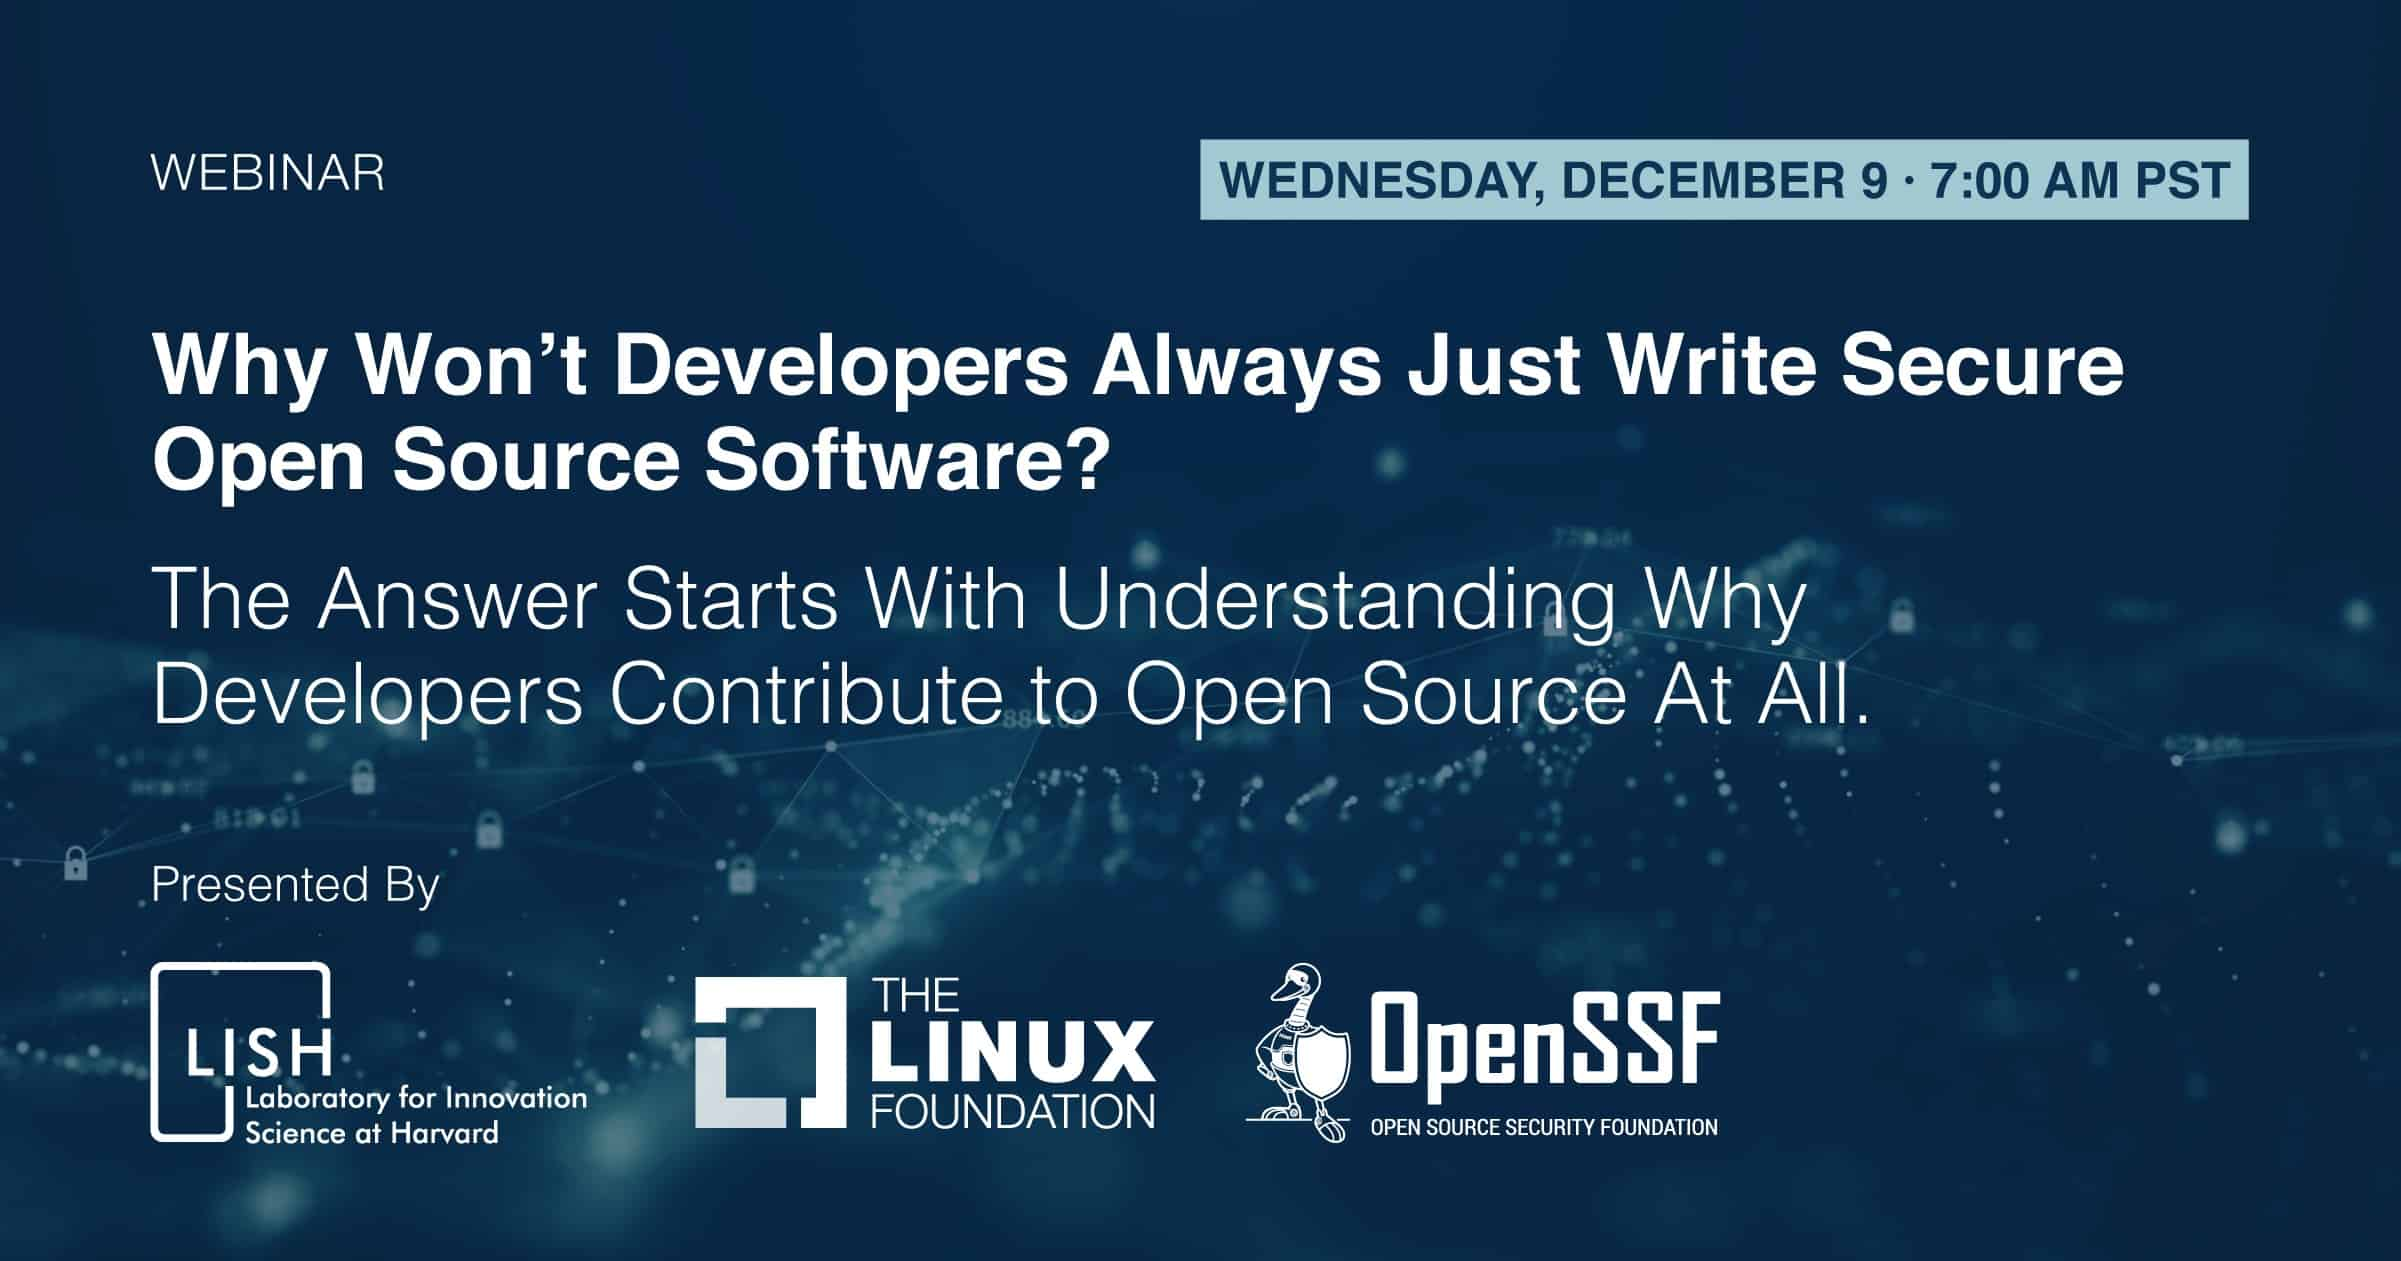 Webinar Why Won T Developers Always Just Write Secure Open Source Software Linux Foundation Events